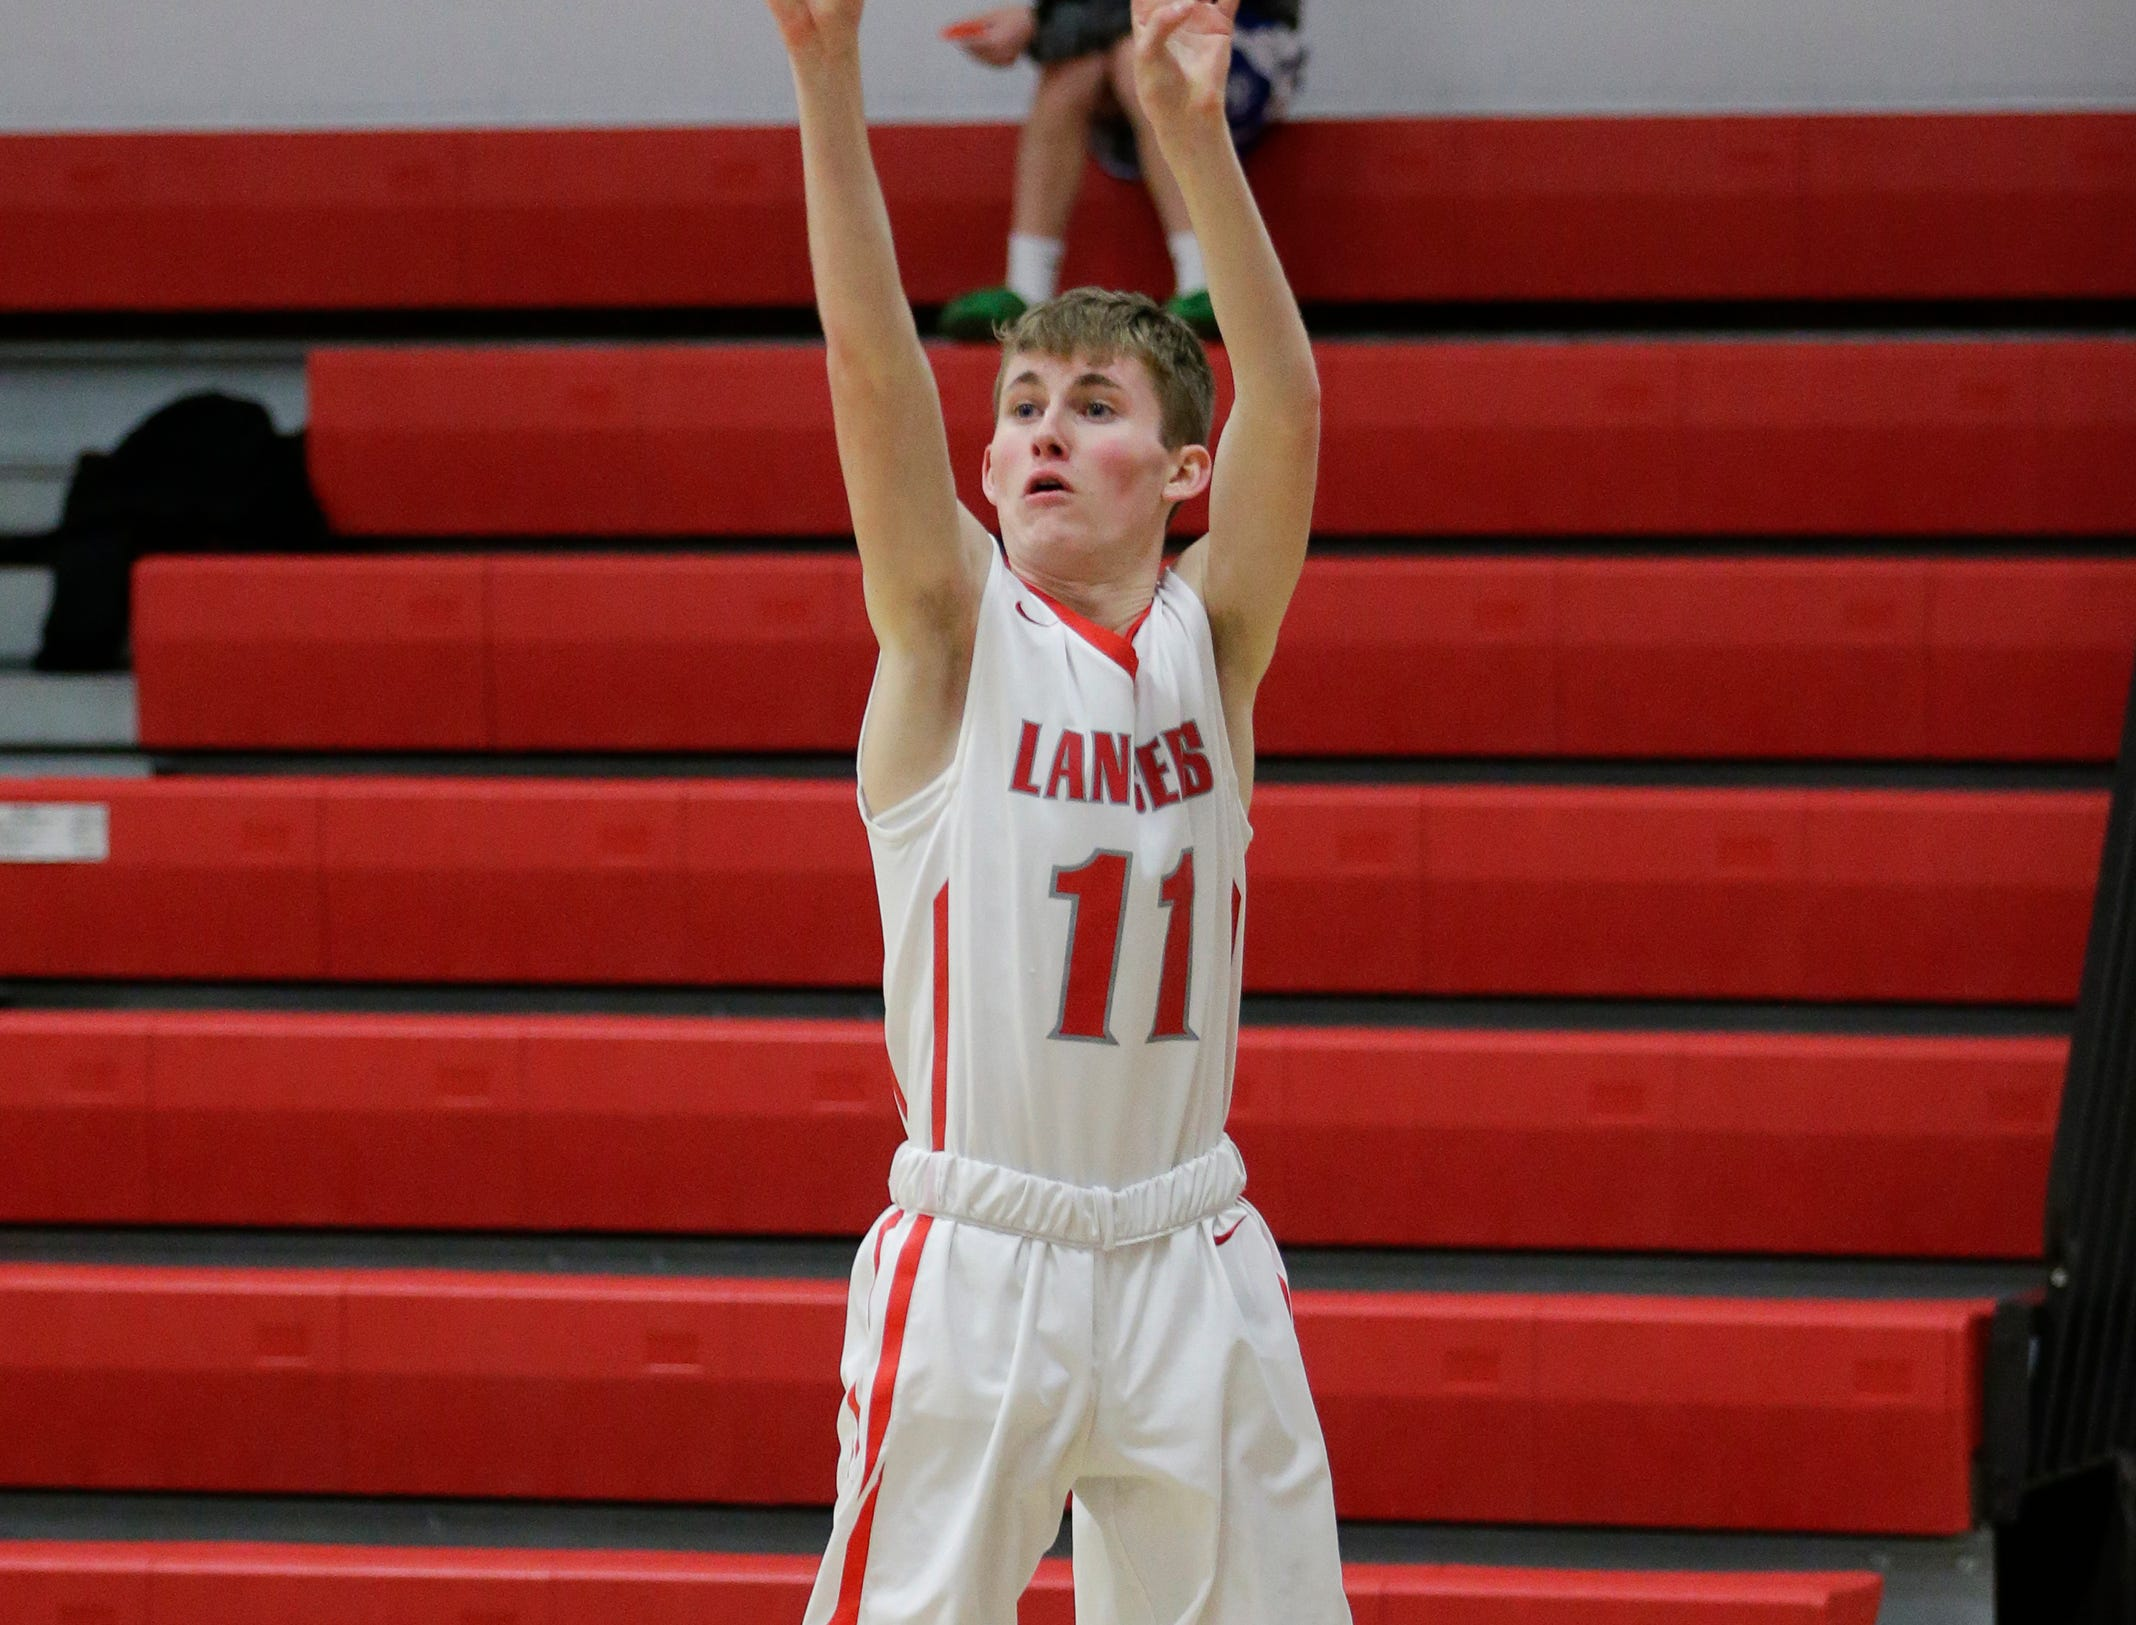 Manitowoc Lutheran's Jacob Schultz sinks a three against Kohler at Manitowoc Lutheran High School Friday, January 18, 2019, in Manitowoc, Wis. Joshua Clark/USA TODAY NETWORK-Wisconsin